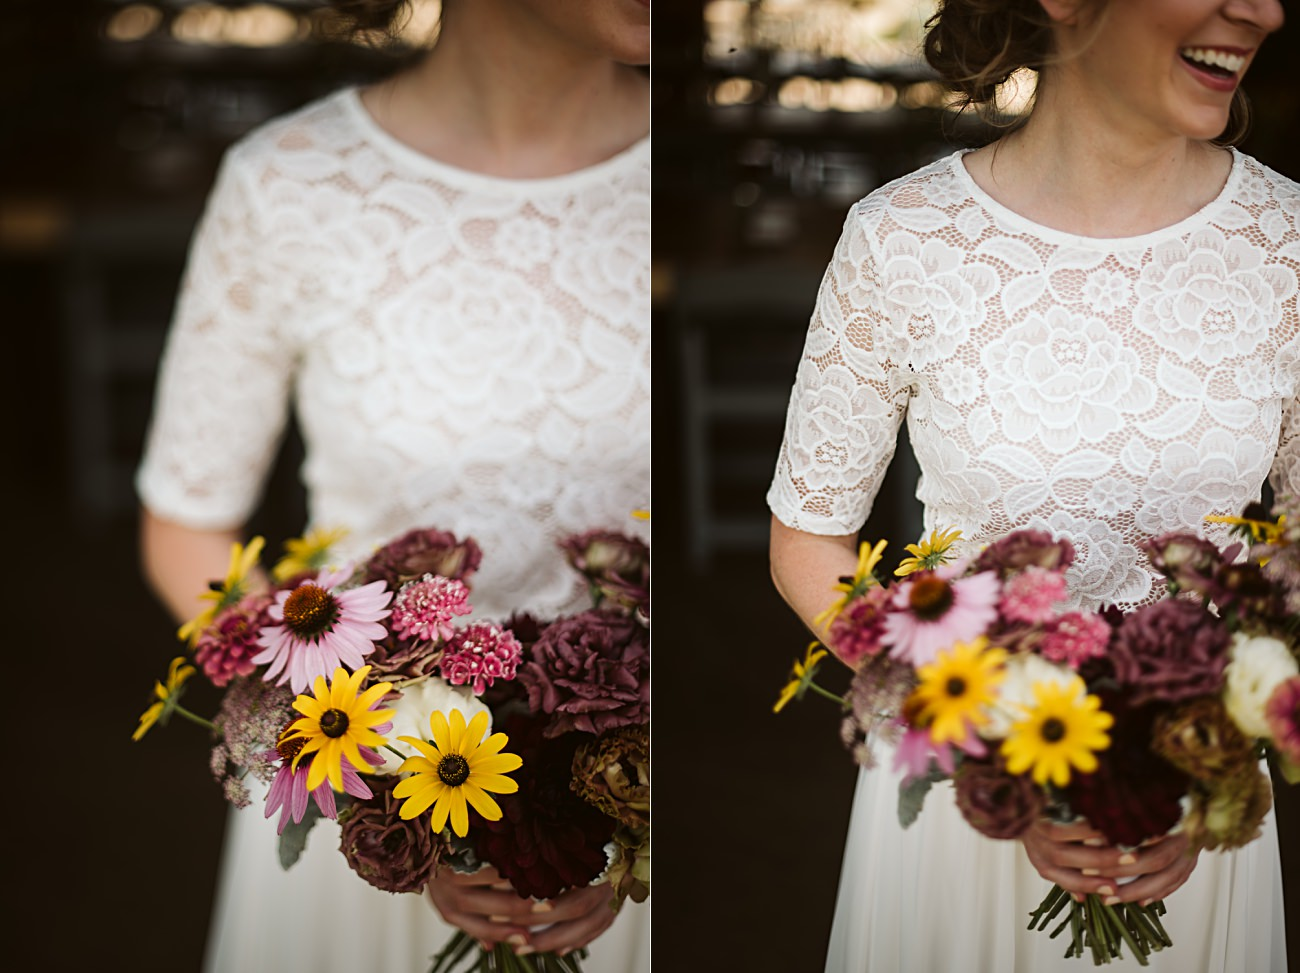 Wisconsin Barn Wedding, Madison Wisconsin Wedding Photographer, Wedding Party Photos, Lace 2 piece wedding gown